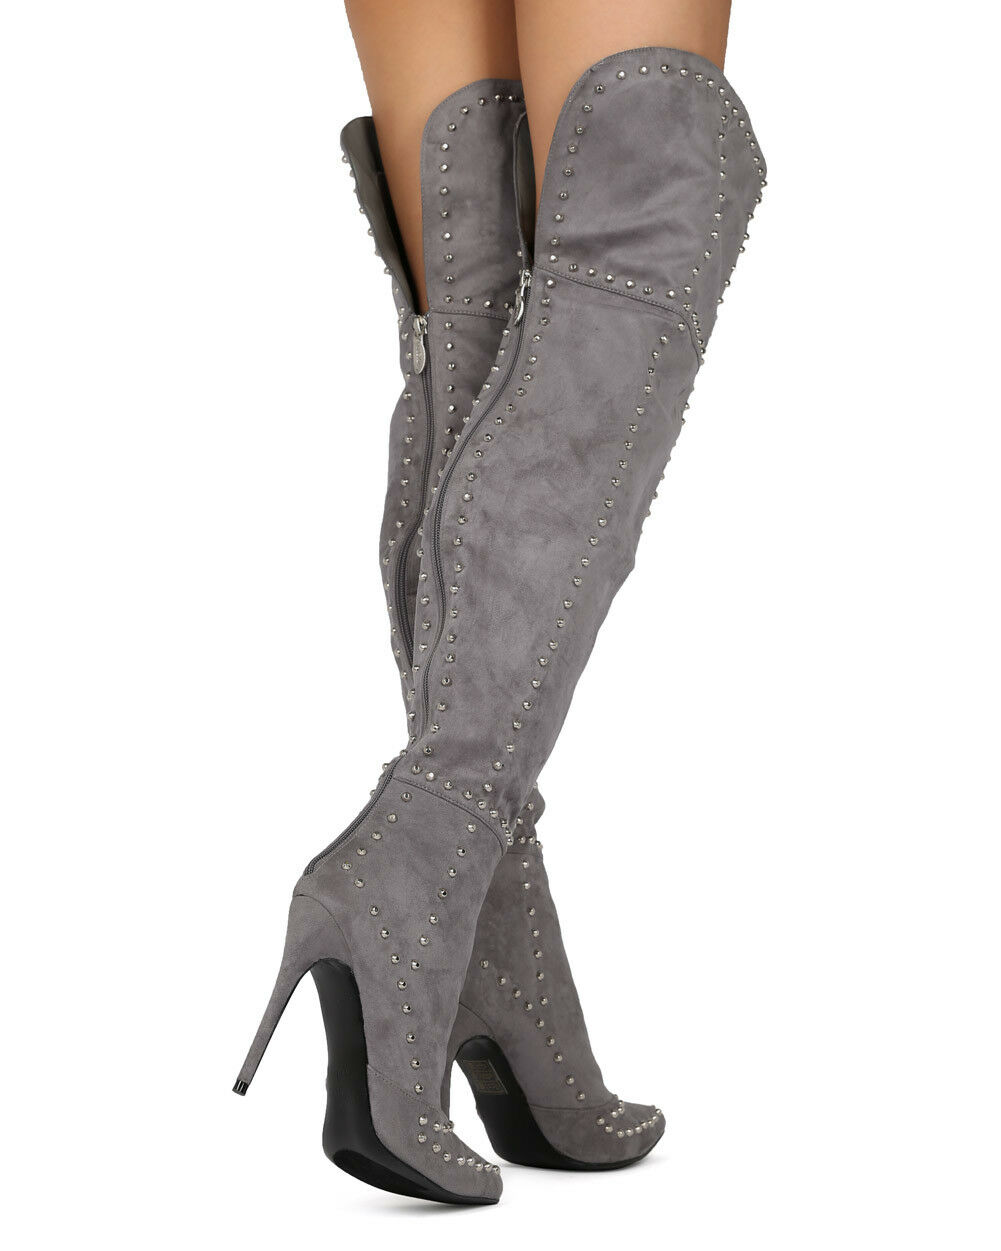 NEU Damens MACKIN J 181-1 Faux Suede Thigh High Pointy Toe Studded Stiletto Boot